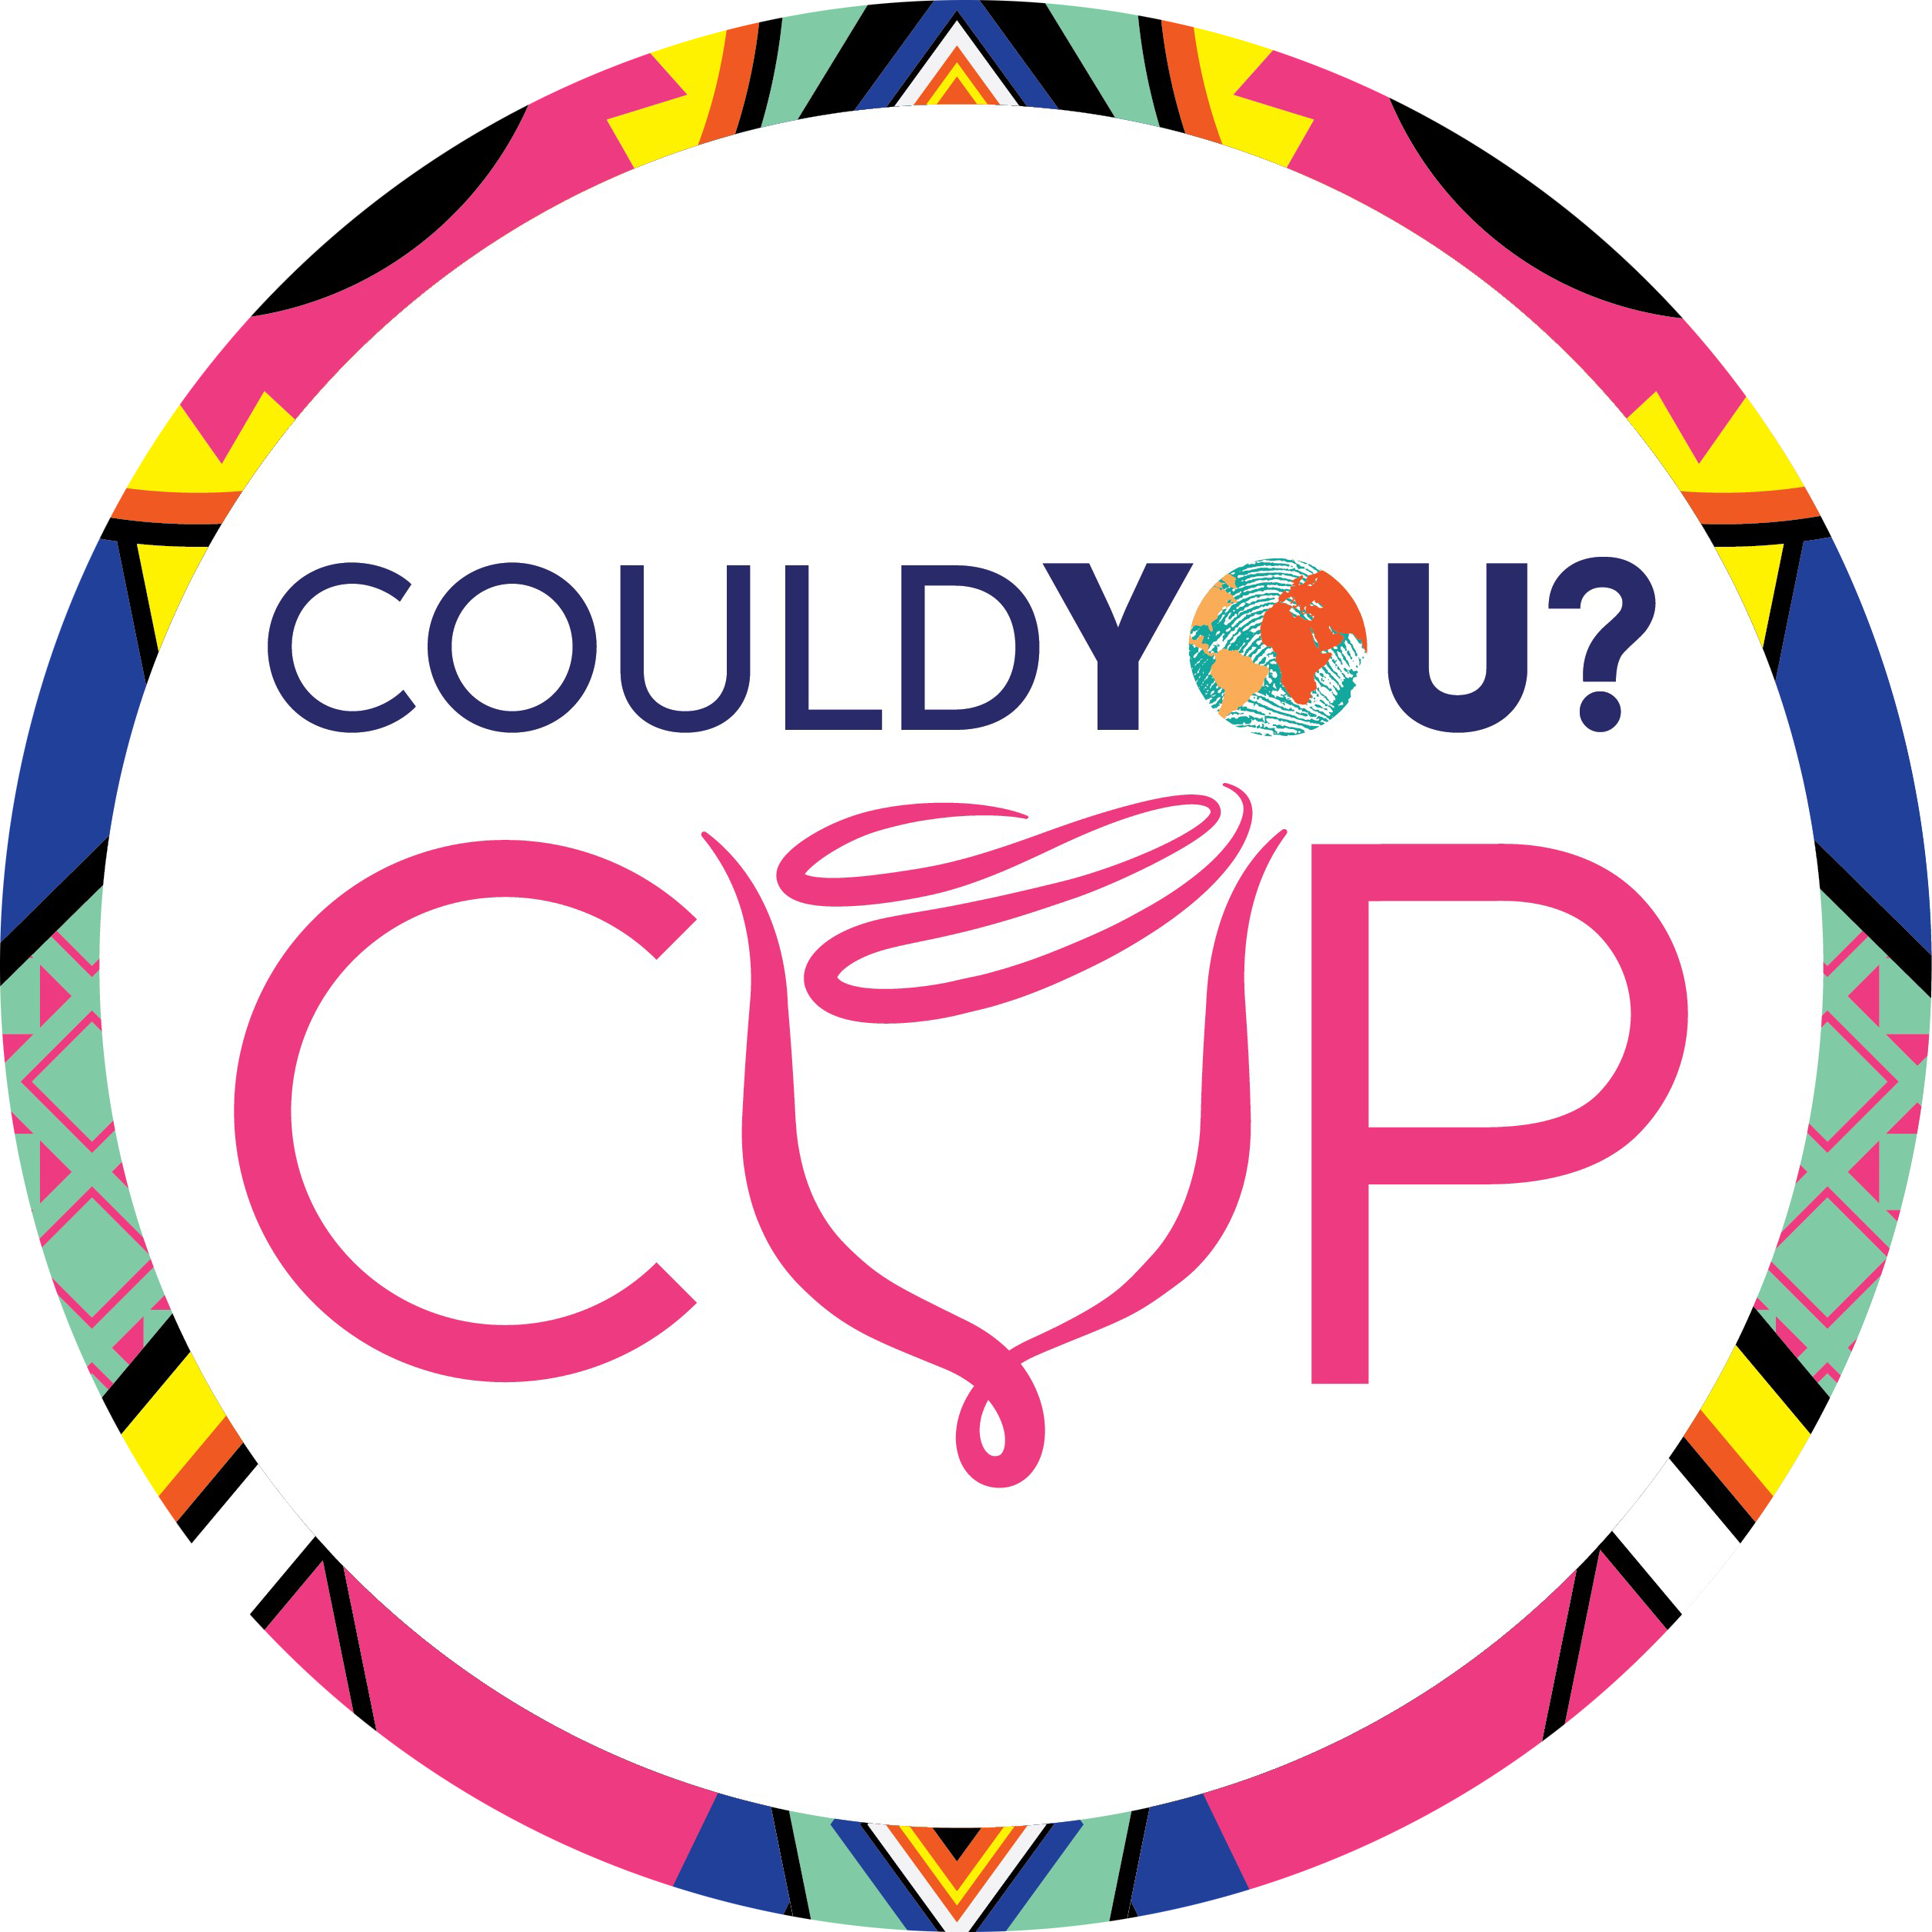 CouldYou? Cup